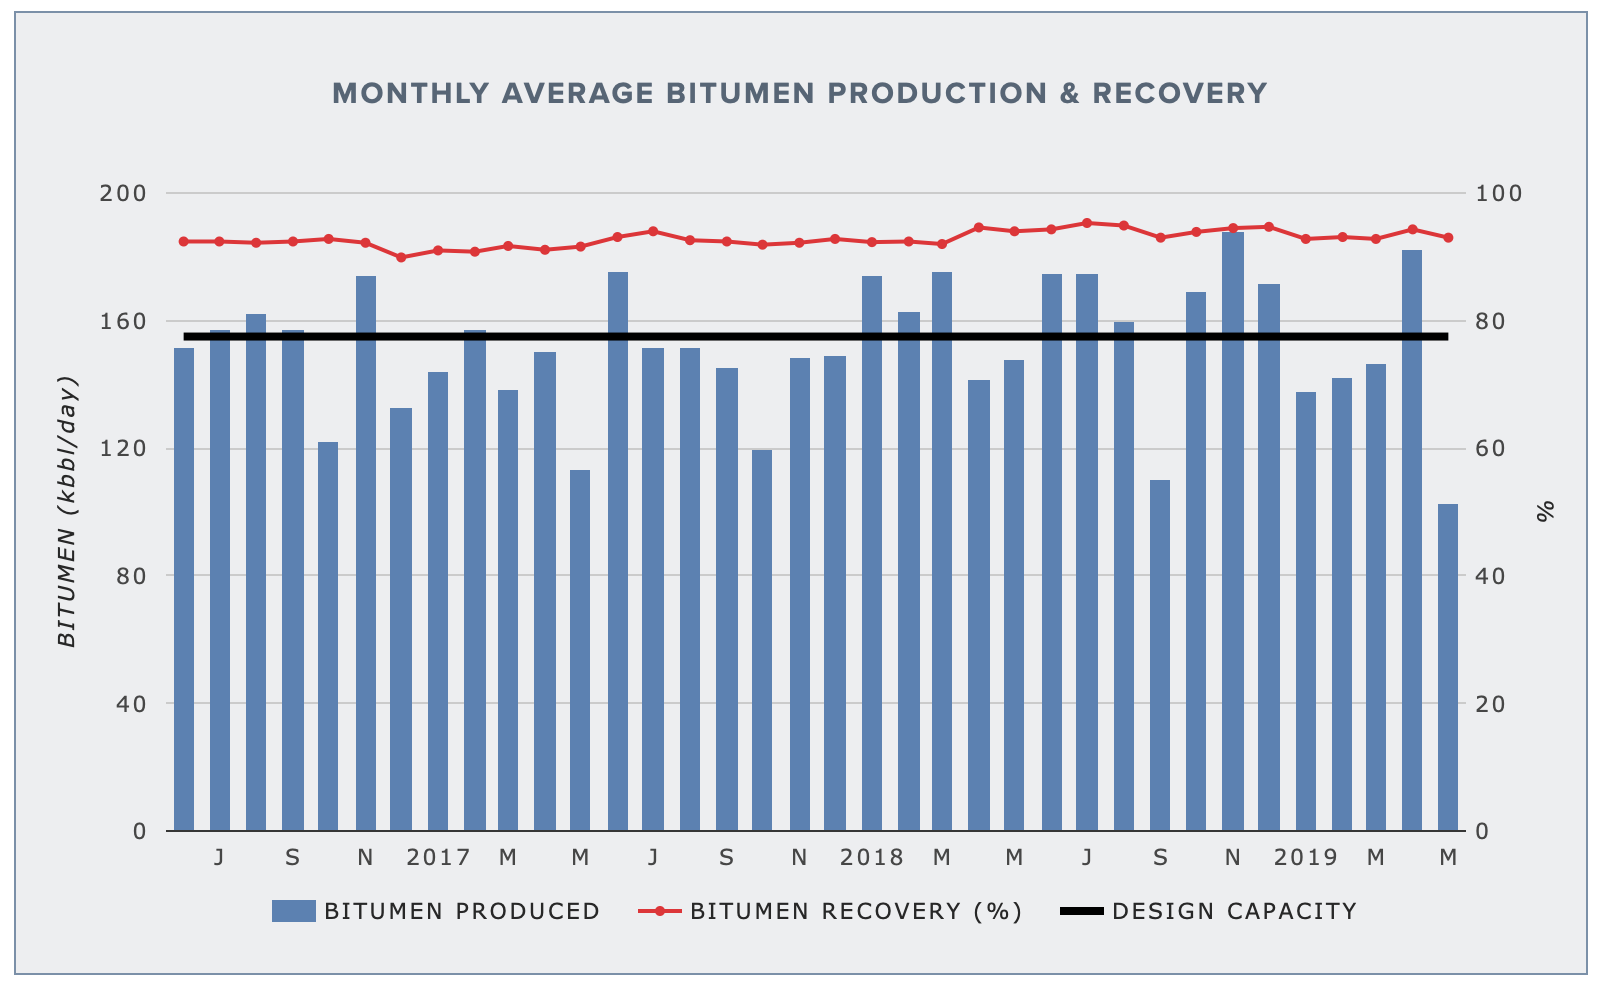 MUSKEG RIVER MINE — BITUMEN PRODUCTION AND RECOVERY